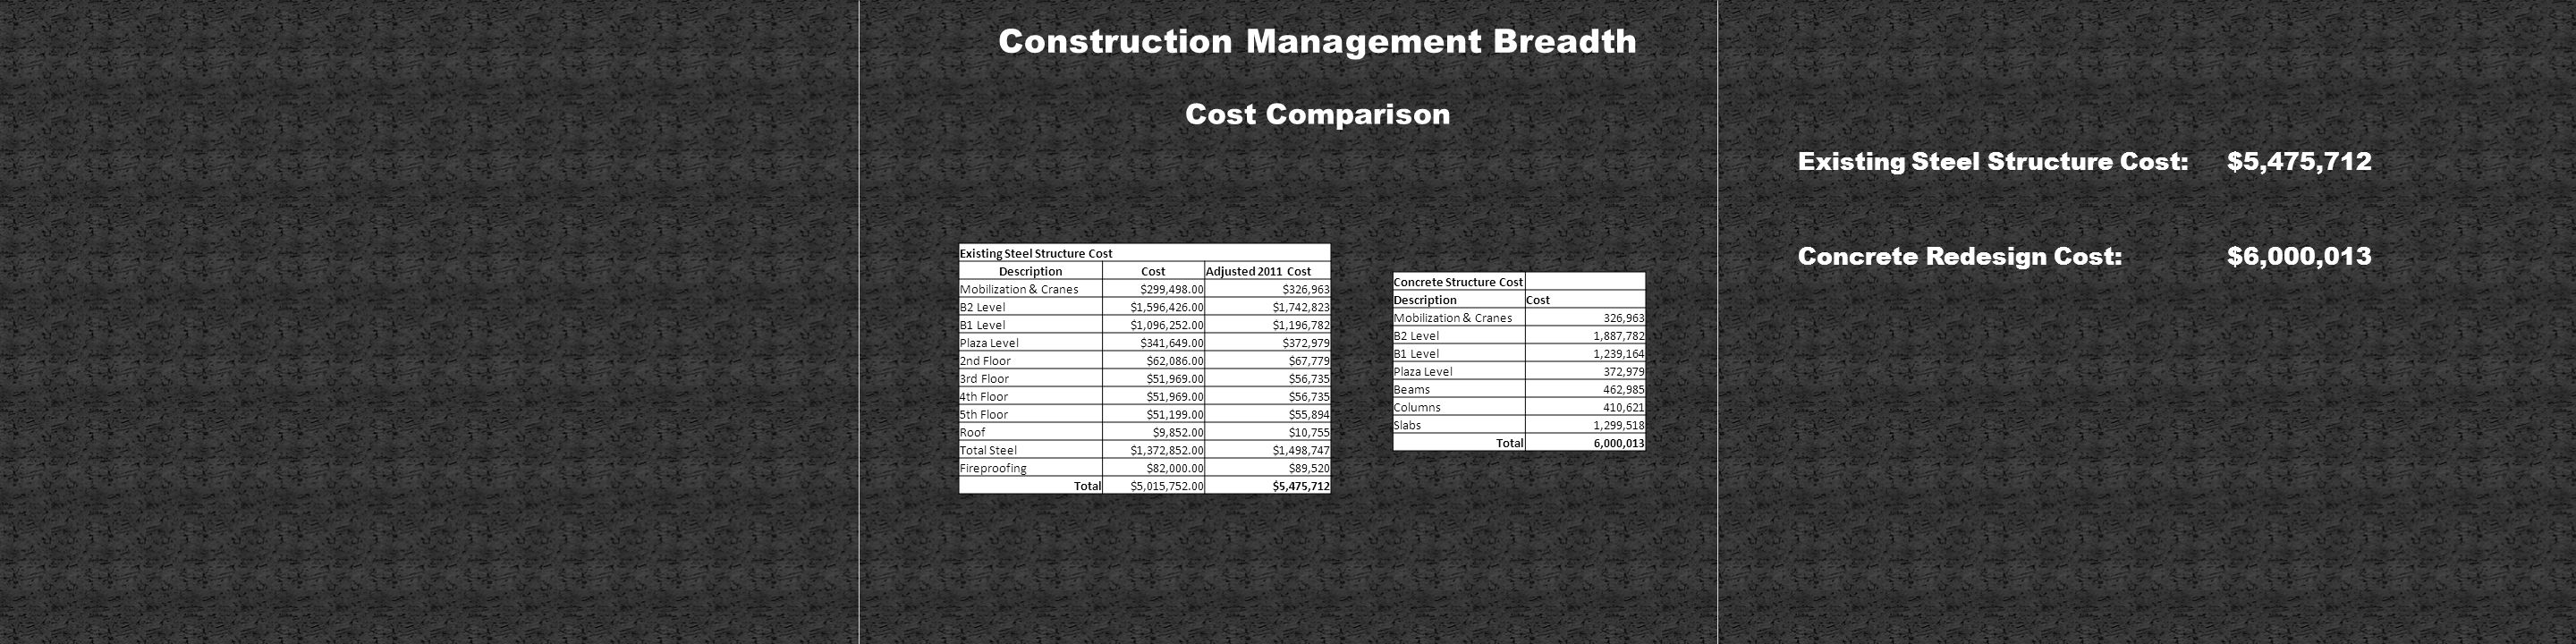 Construction Management Breadth Existing Steel Structure Cost DescriptionCostAdjusted 2011 Cost Mobilization & Cranes$299,498.00$326,963 B2 Level$1,596,426.00$1,742,823 B1 Level$1,096,252.00$1,196,782 Plaza Level$341,649.00$372,979 2nd Floor$62,086.00$67,779 3rd Floor$51,969.00$56,735 4th Floor$51,969.00$56,735 5th Floor$51,199.00$55,894 Roof$9,852.00$10,755 Total Steel$1,372,852.00$1,498,747 Fireproofing$82,000.00$89,520 Total$5,015,752.00$5,475,712 Concrete Structure Cost DescriptionCost Mobilization & Cranes326,963 B2 Level1,887,782 B1 Level1,239,164 Plaza Level372,979 Beams462,985 Columns410,621 Slabs1,299,518 Total6,000,013 Cost Comparison Existing Steel Structure Cost: $5,475,712 Concrete Redesign Cost:$6,000,013